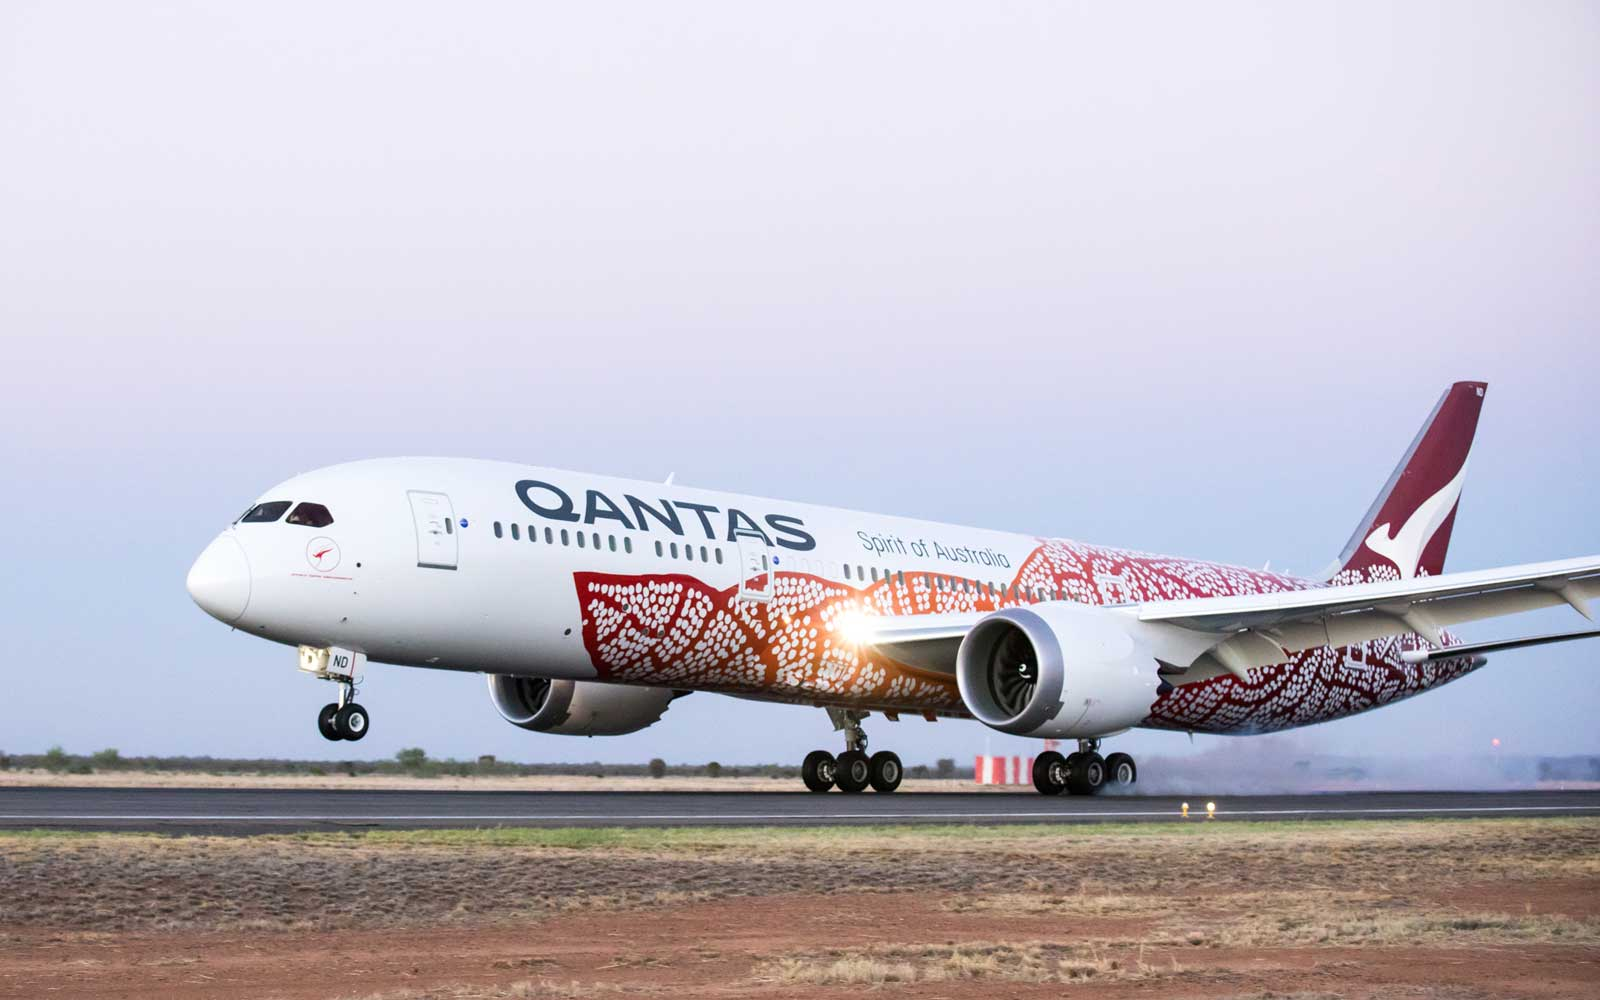 Qantas airlines plane painted with Indigenous artwork